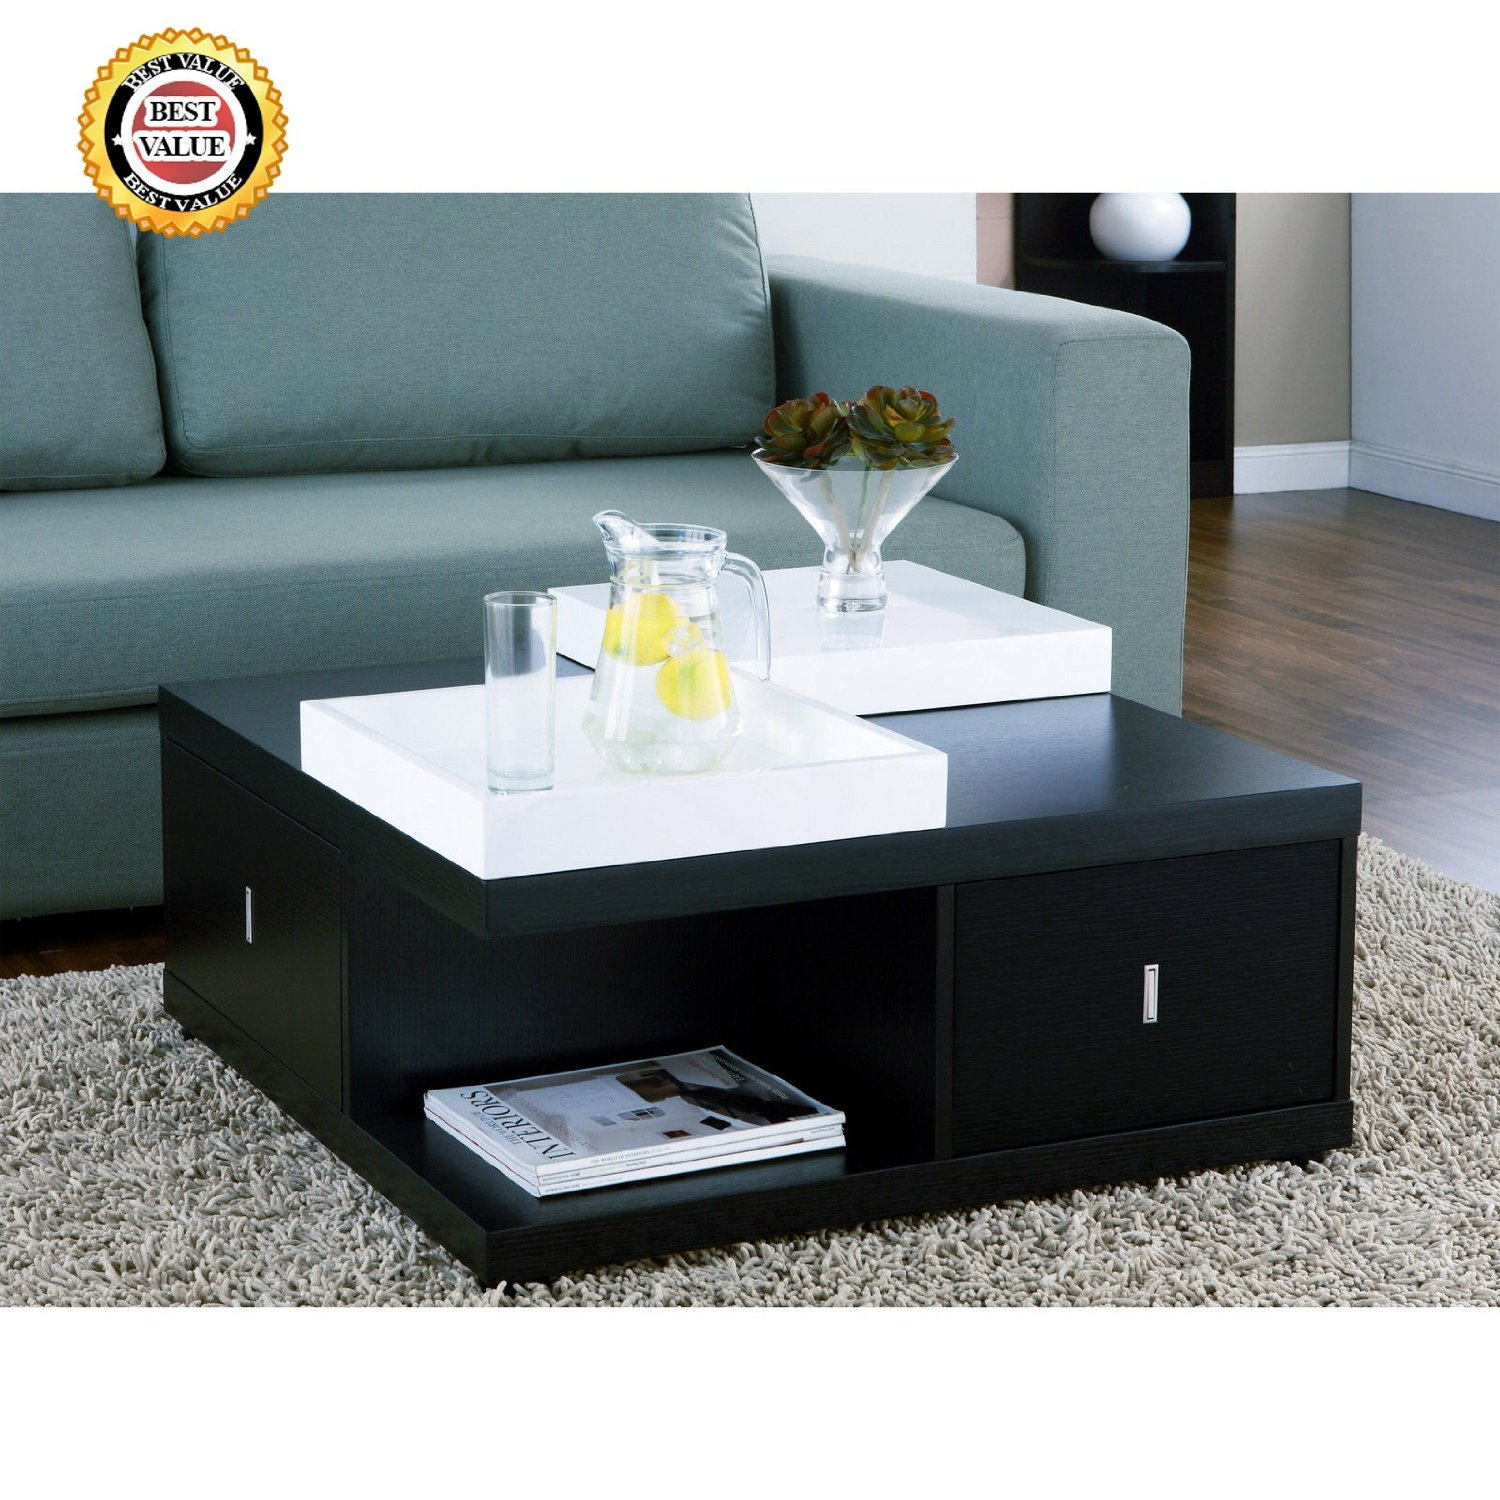 CONTEMPORARY, Modern, Black, Square Mareines Coffee Table with Storage & White Serving Trays. ELEGANT Dark Wood Color & Design Pairs Well with Furniture of ALL Sizes for Living Room & Patio Furniture. BEST Gift Ideas for Weddings, Housewarming, Birthday & HOLIDAYS!